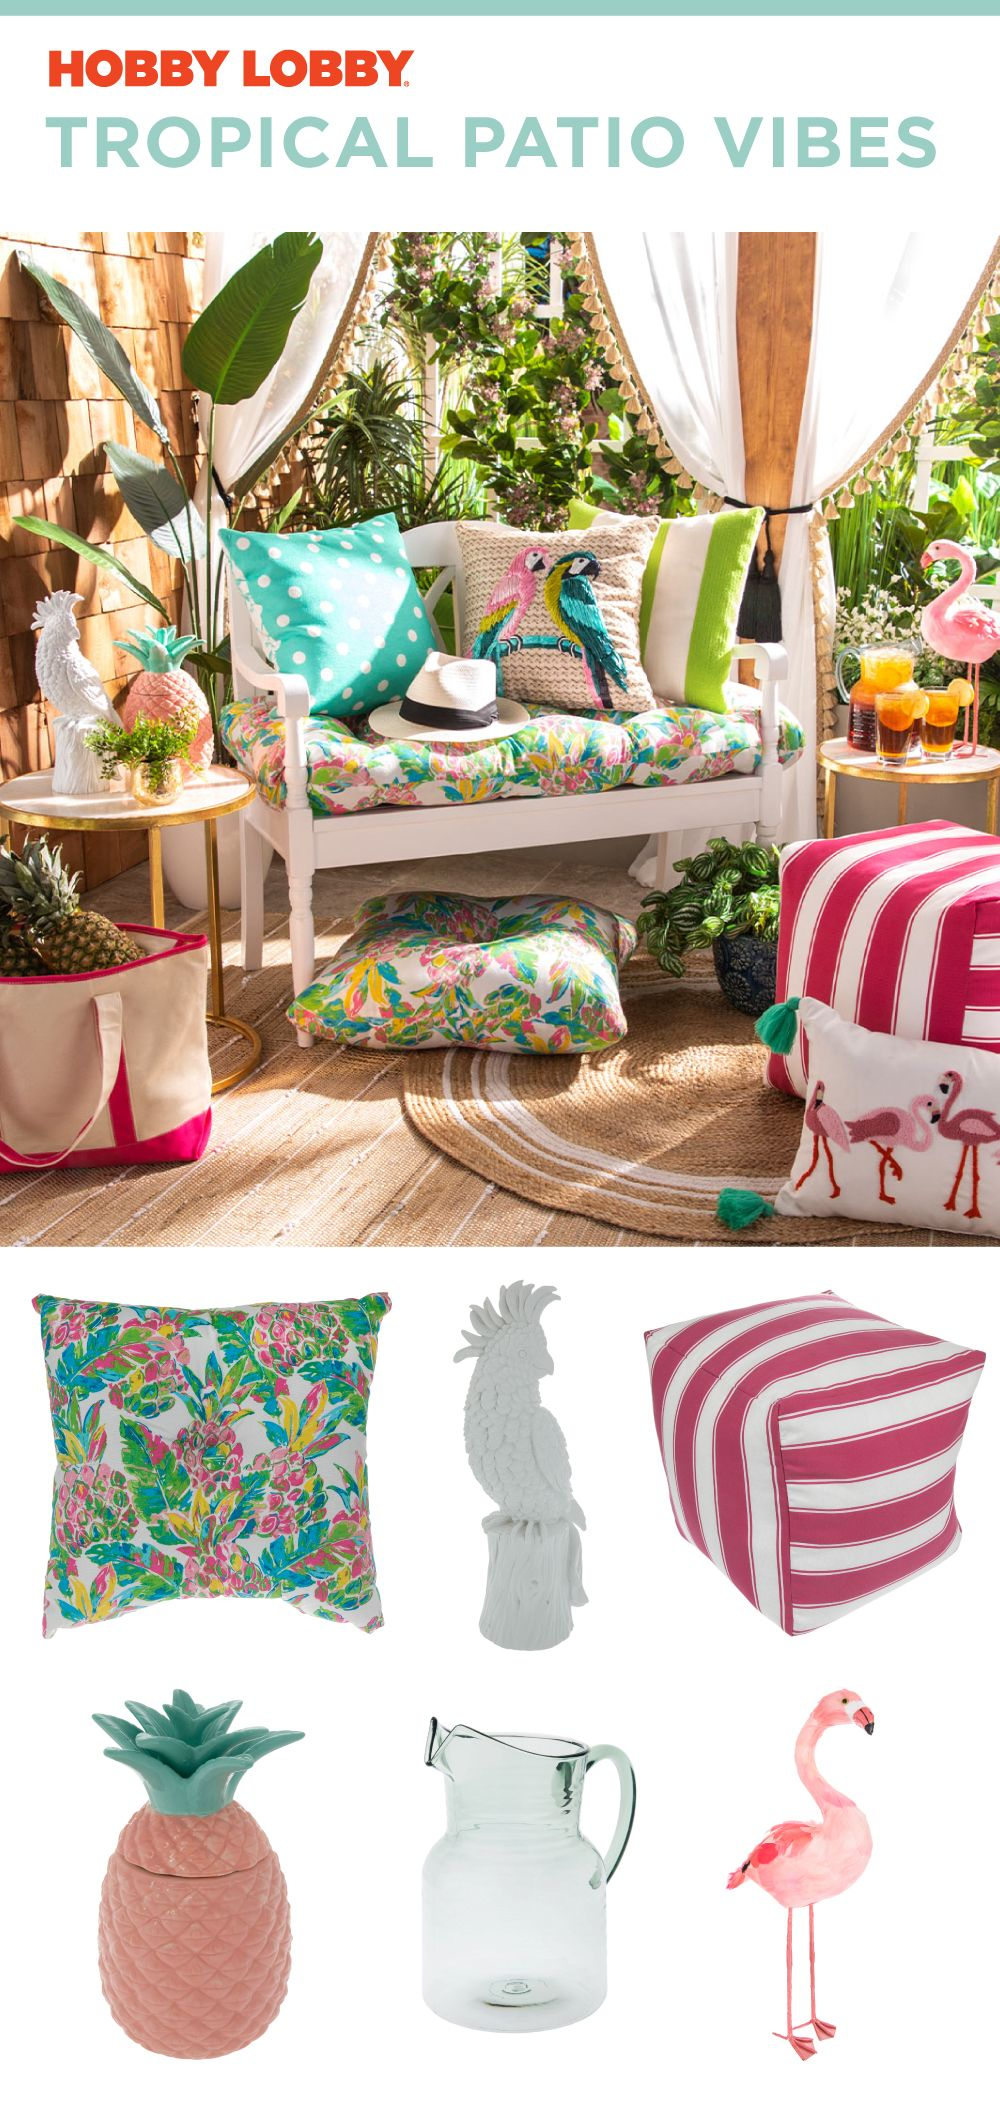 We Love Combining Tropical Accents For A Colorful Spring Vibe Rustic Home Interiors Funny Home Decor Patio Decor Inspiration